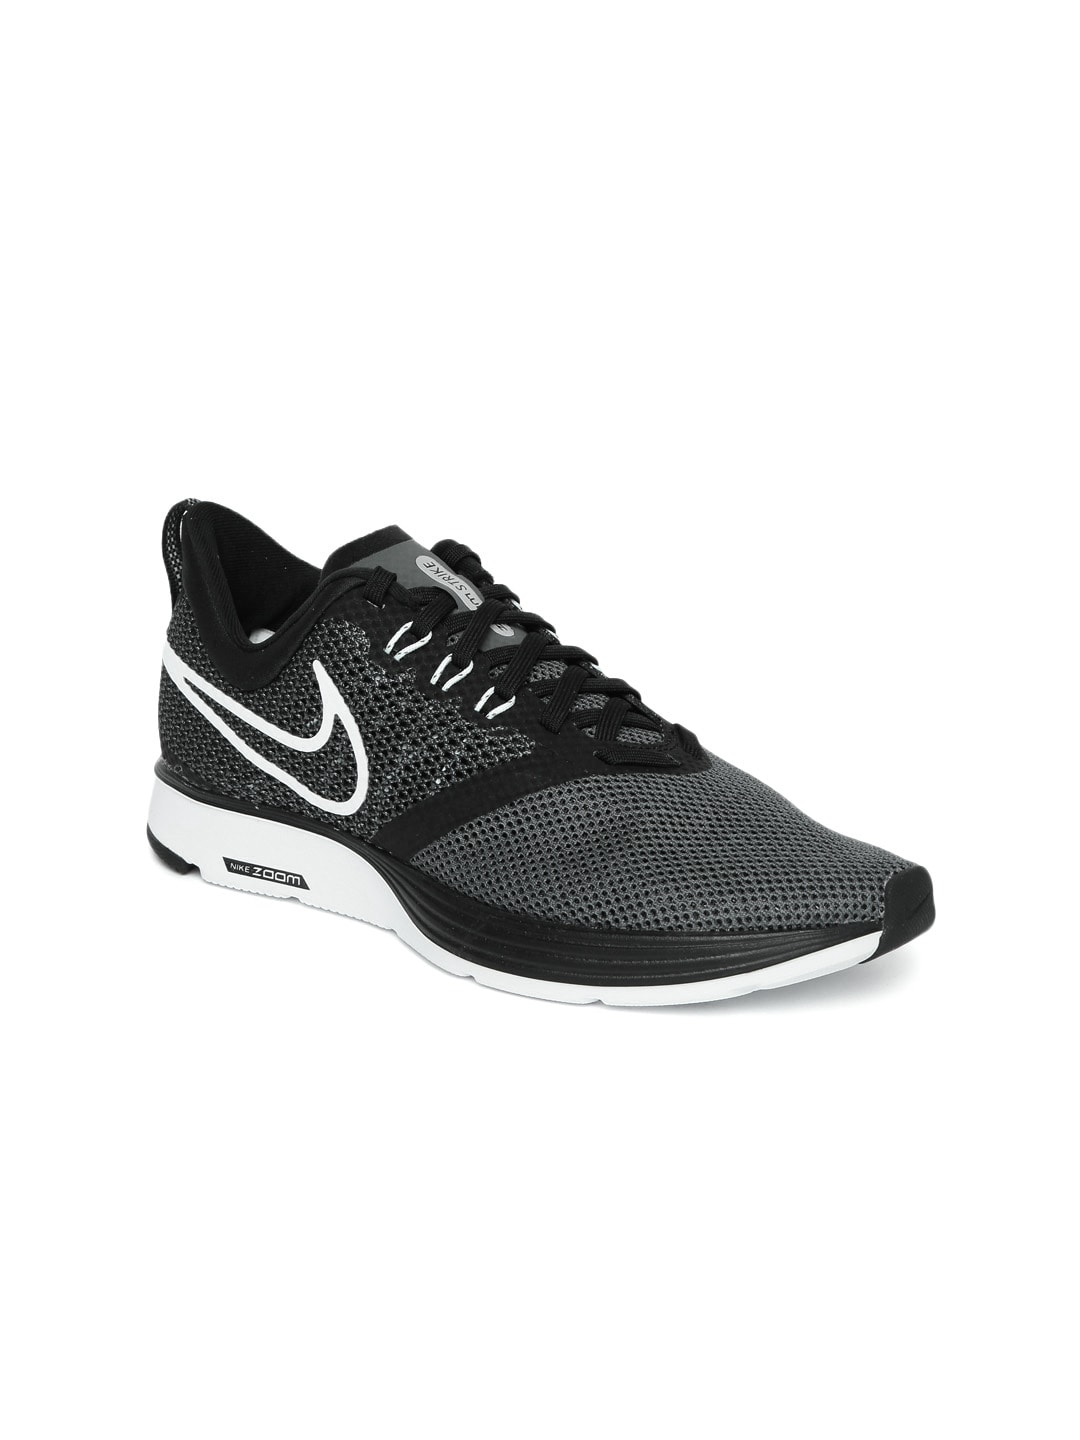 timeless design 1a72e 66b83 Nike Shoes - Buy Nike Shoes for Men, Women   Kids Online   Myntra